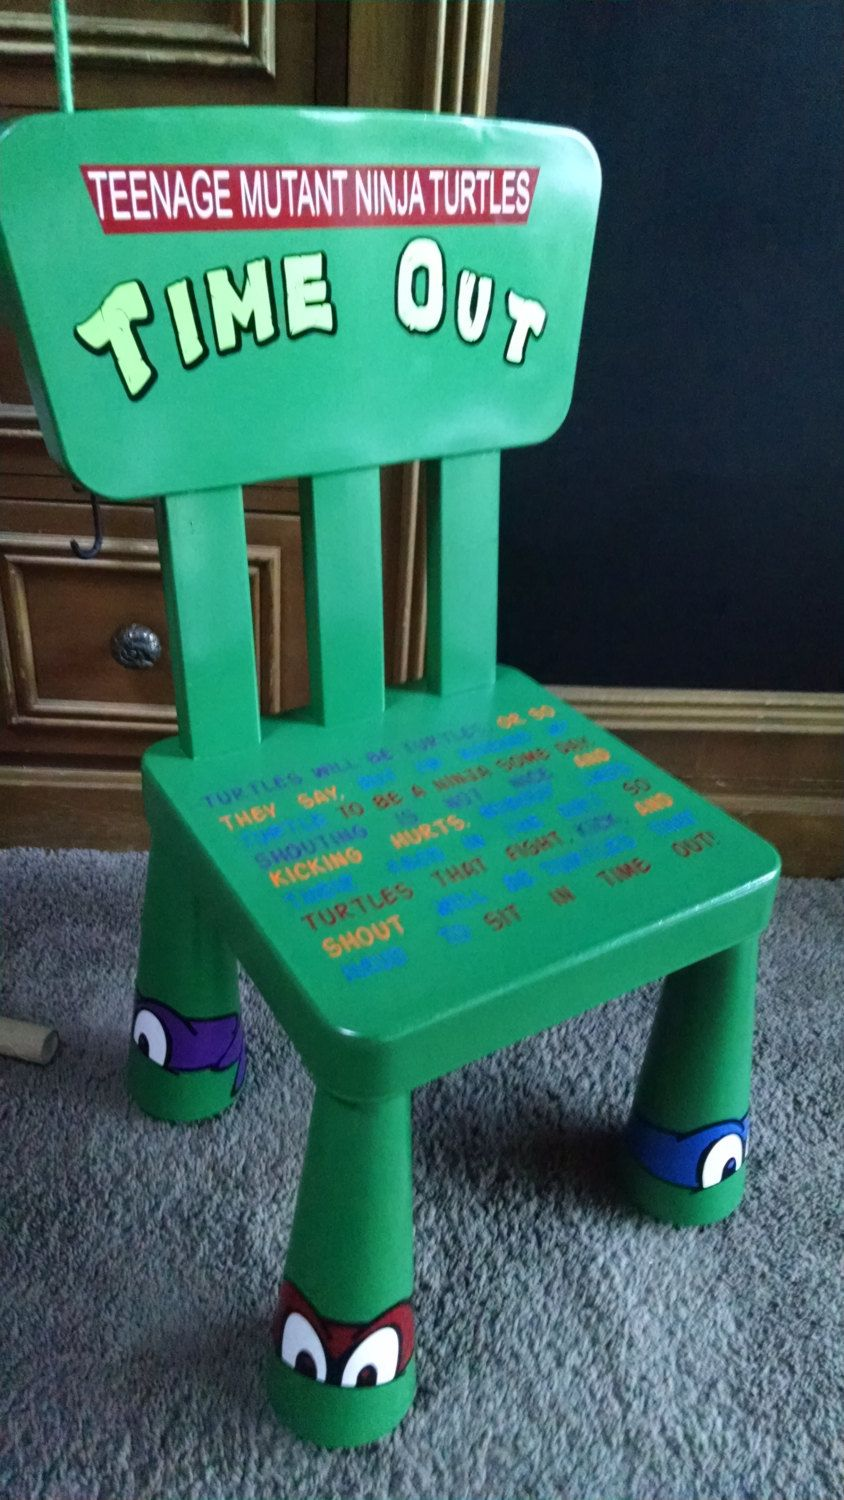 teenage mutant ninja turtles bedroom ideas ninja turtle bedroom teenage mutant ninja turtle time out chair by frommypaintedheart on etsy